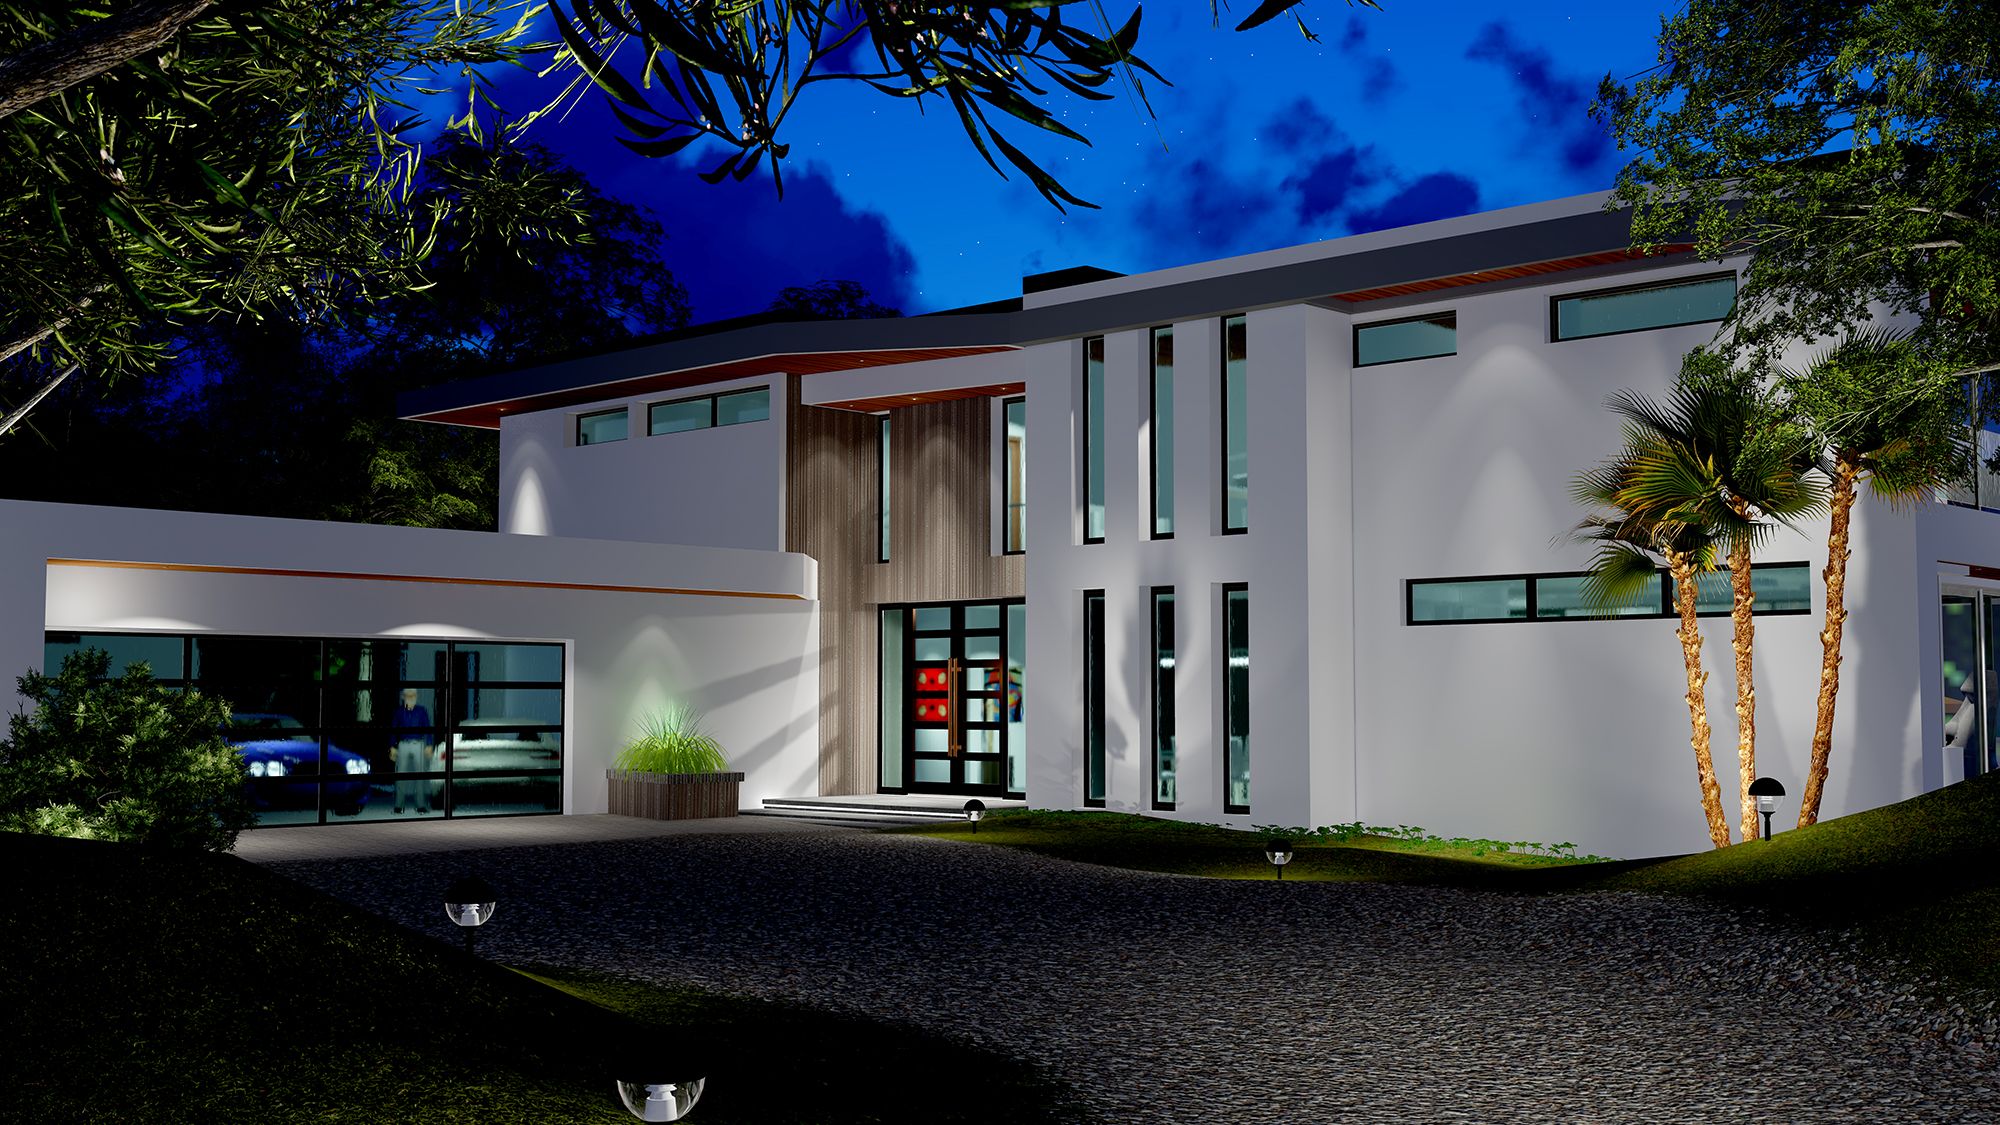 Two Story Modern Glass Home Design Gallery Next Gen Living Homes